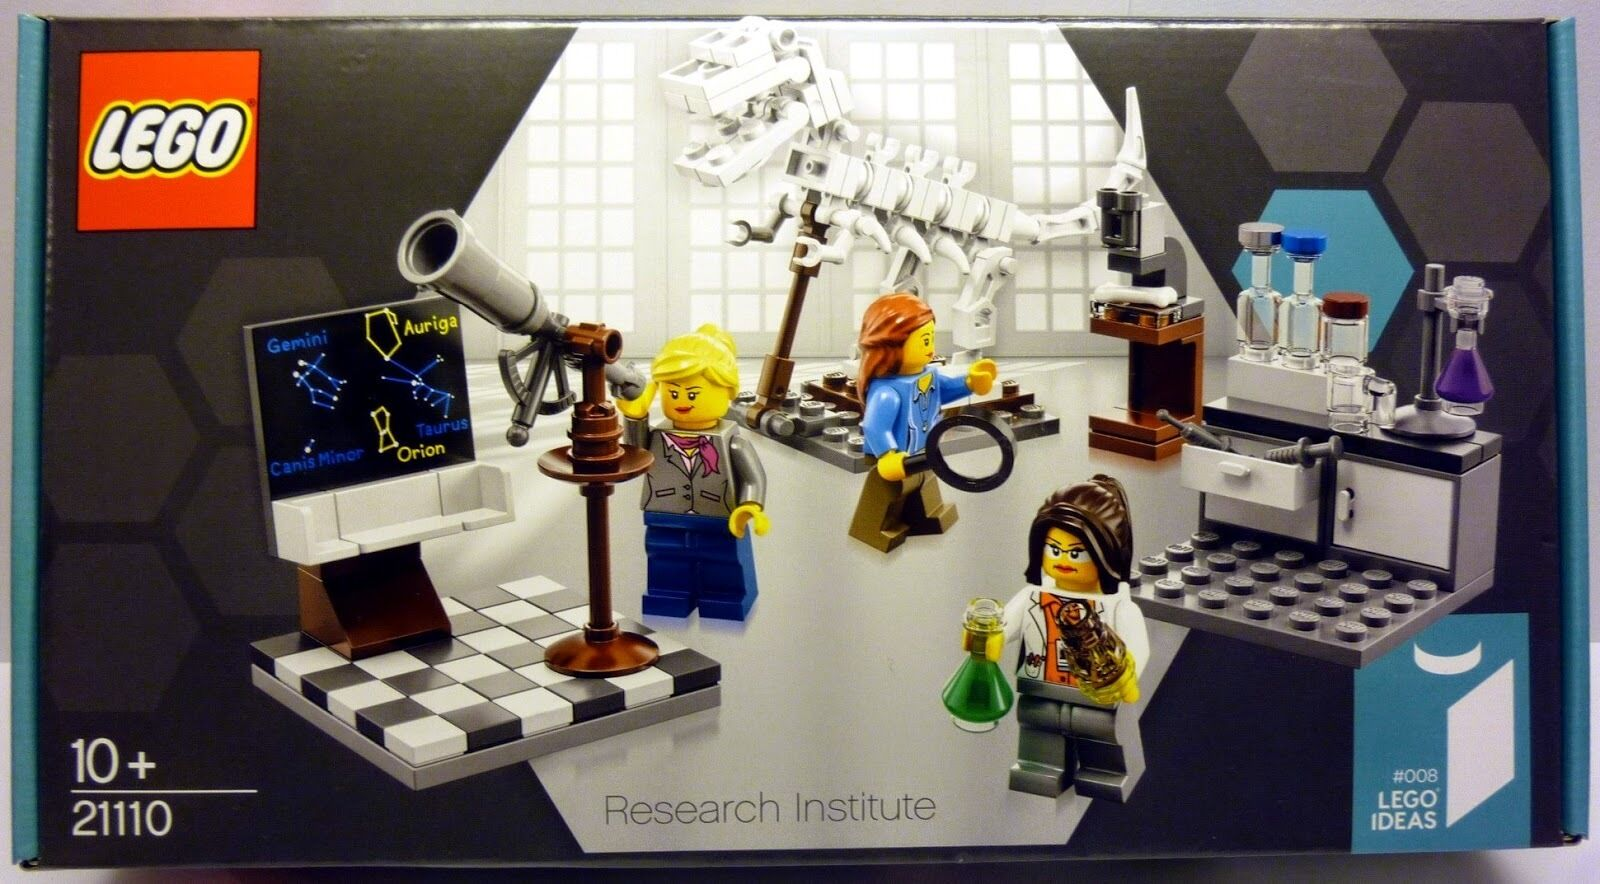 LEGO Ideas Sets  21110 Research Institute - Female/Girl Scientist Cuusoo - New